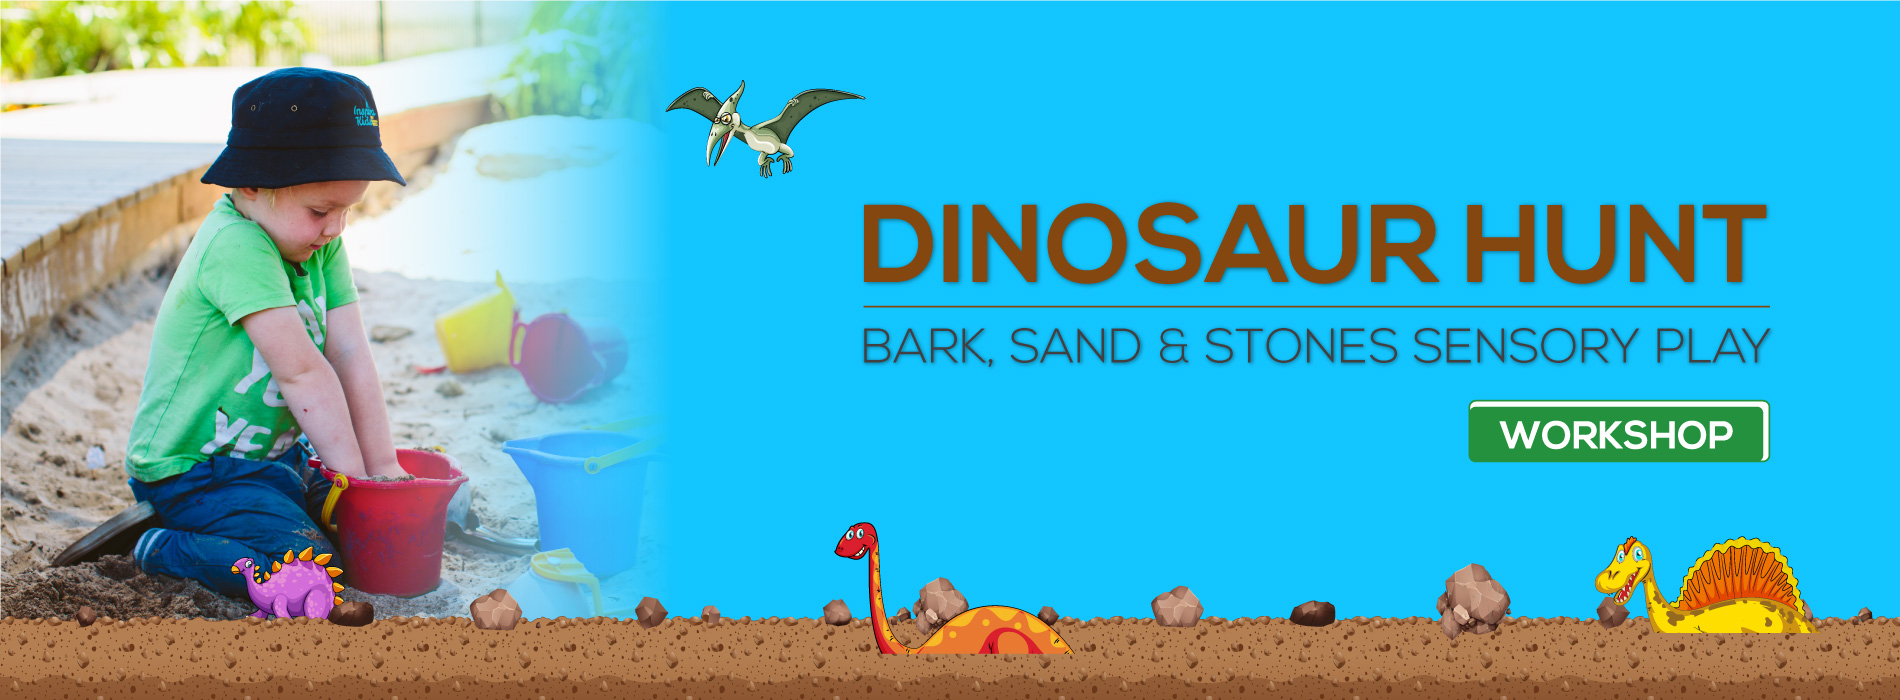 Inspira Kids Dinosaur Hunt Workshop